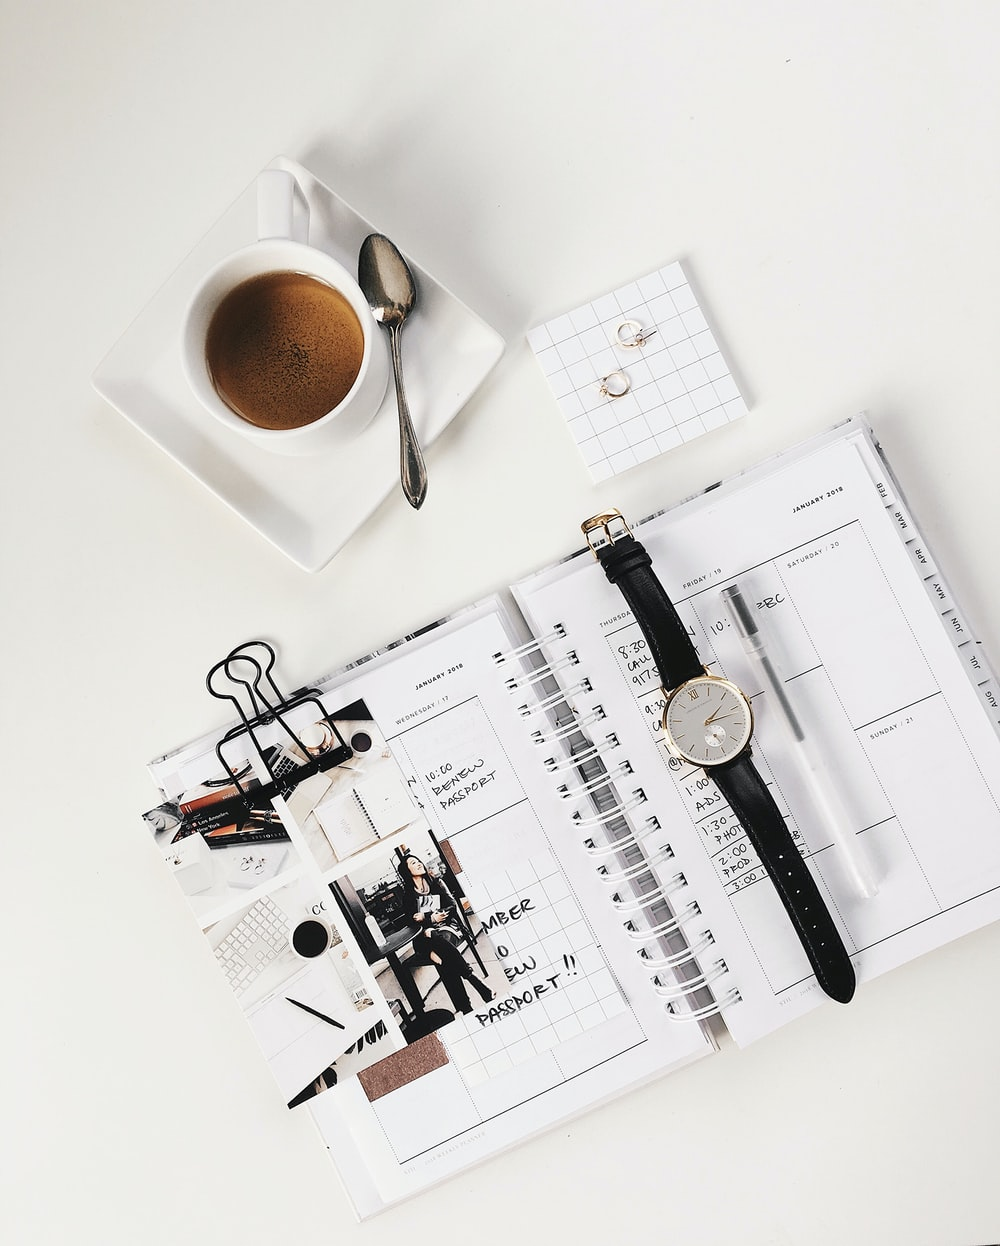 analog watch on top of book beside white ceramic teacup with teaspoon